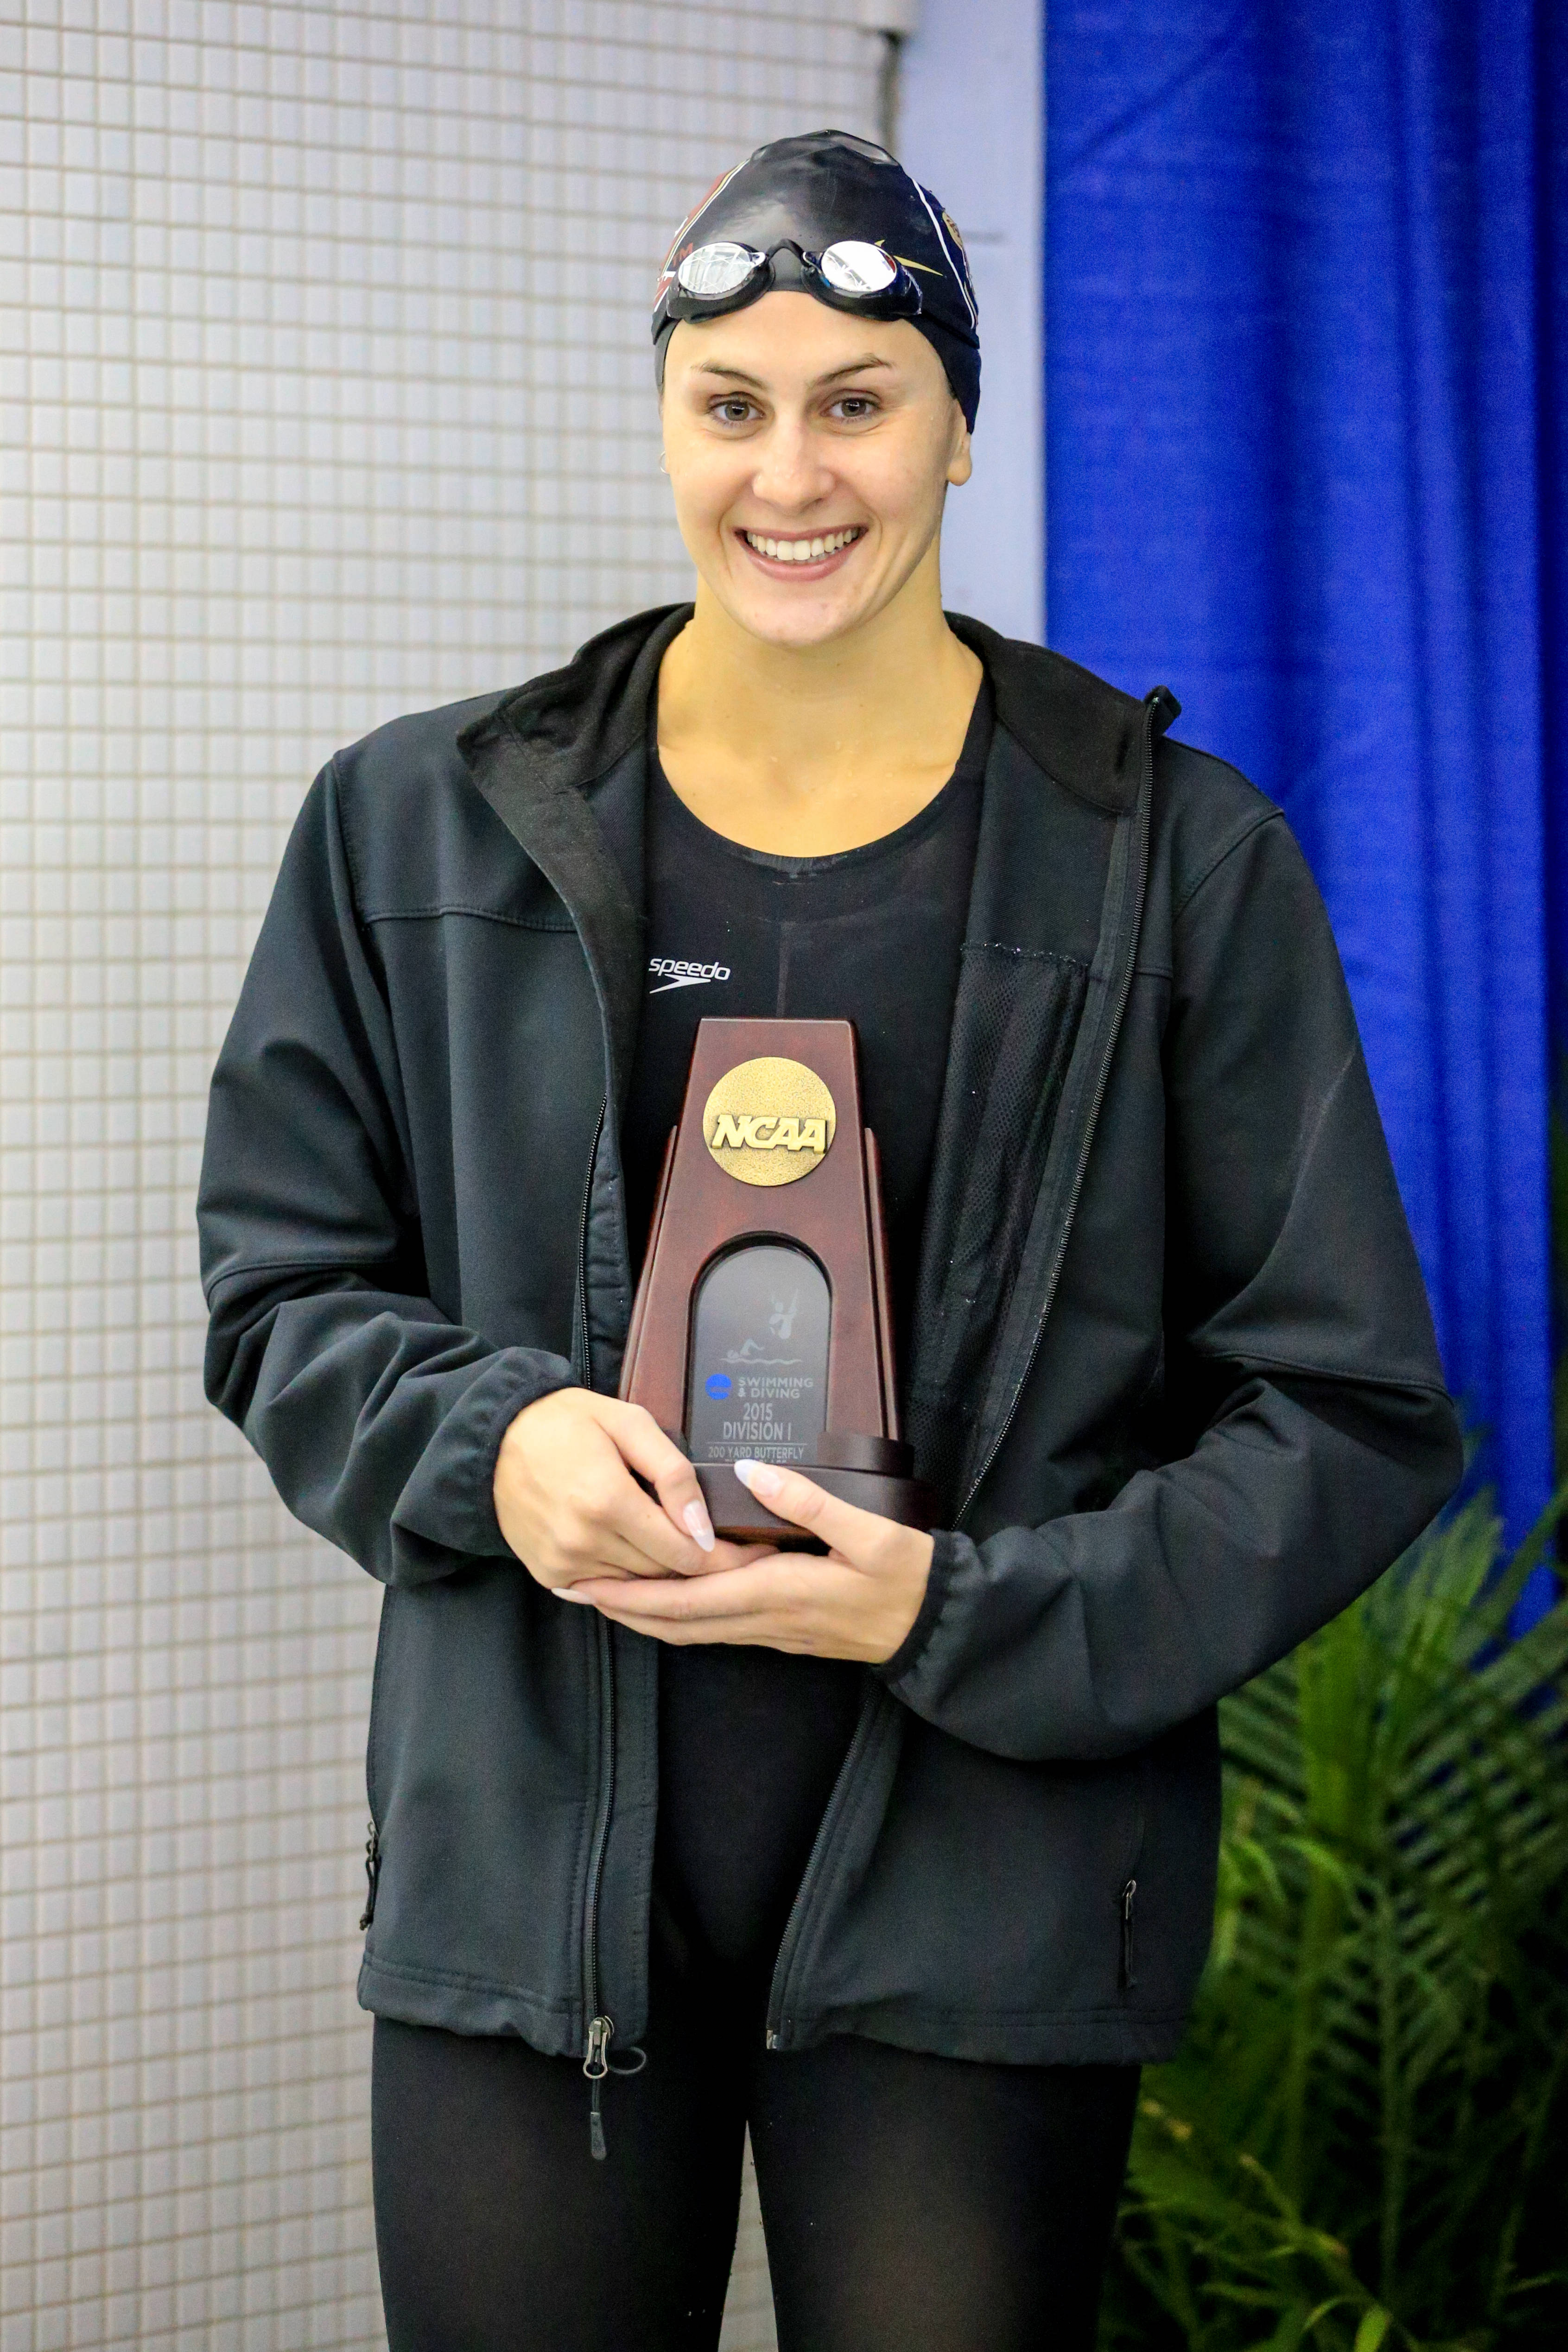 Chelsea Britt on the podium of the 200 fly